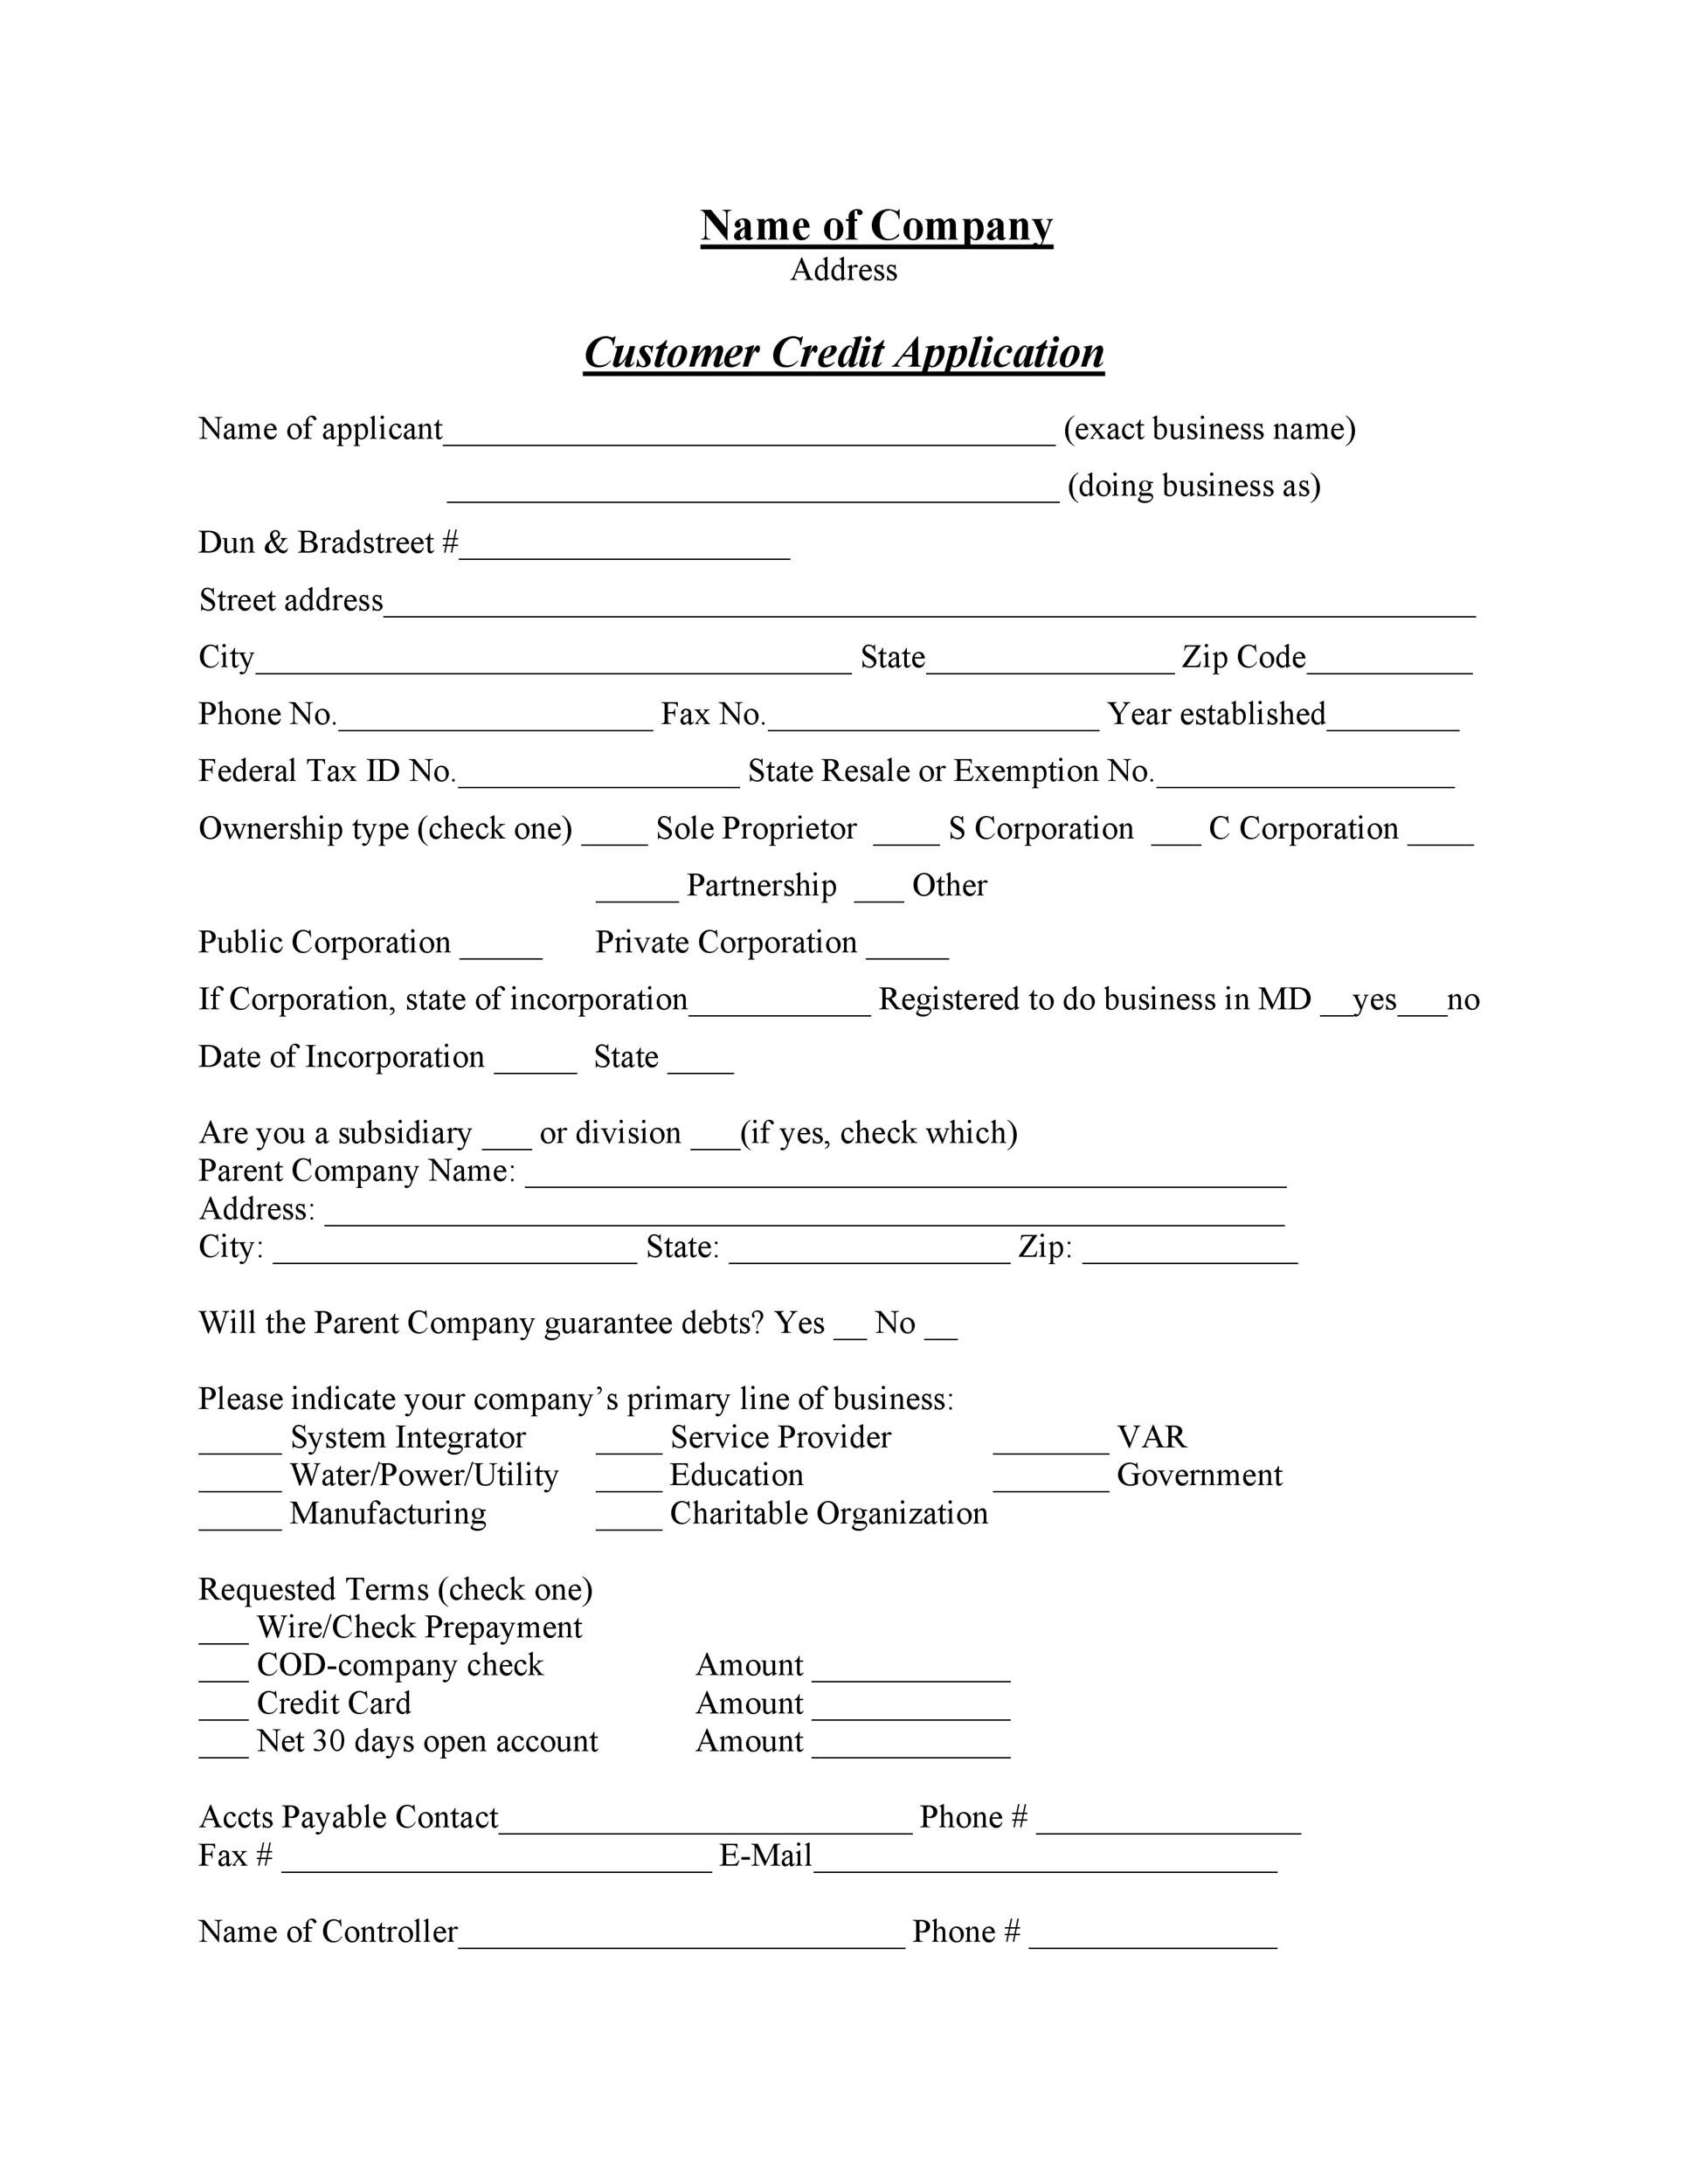 Free Credit Application Form Templates  Samples